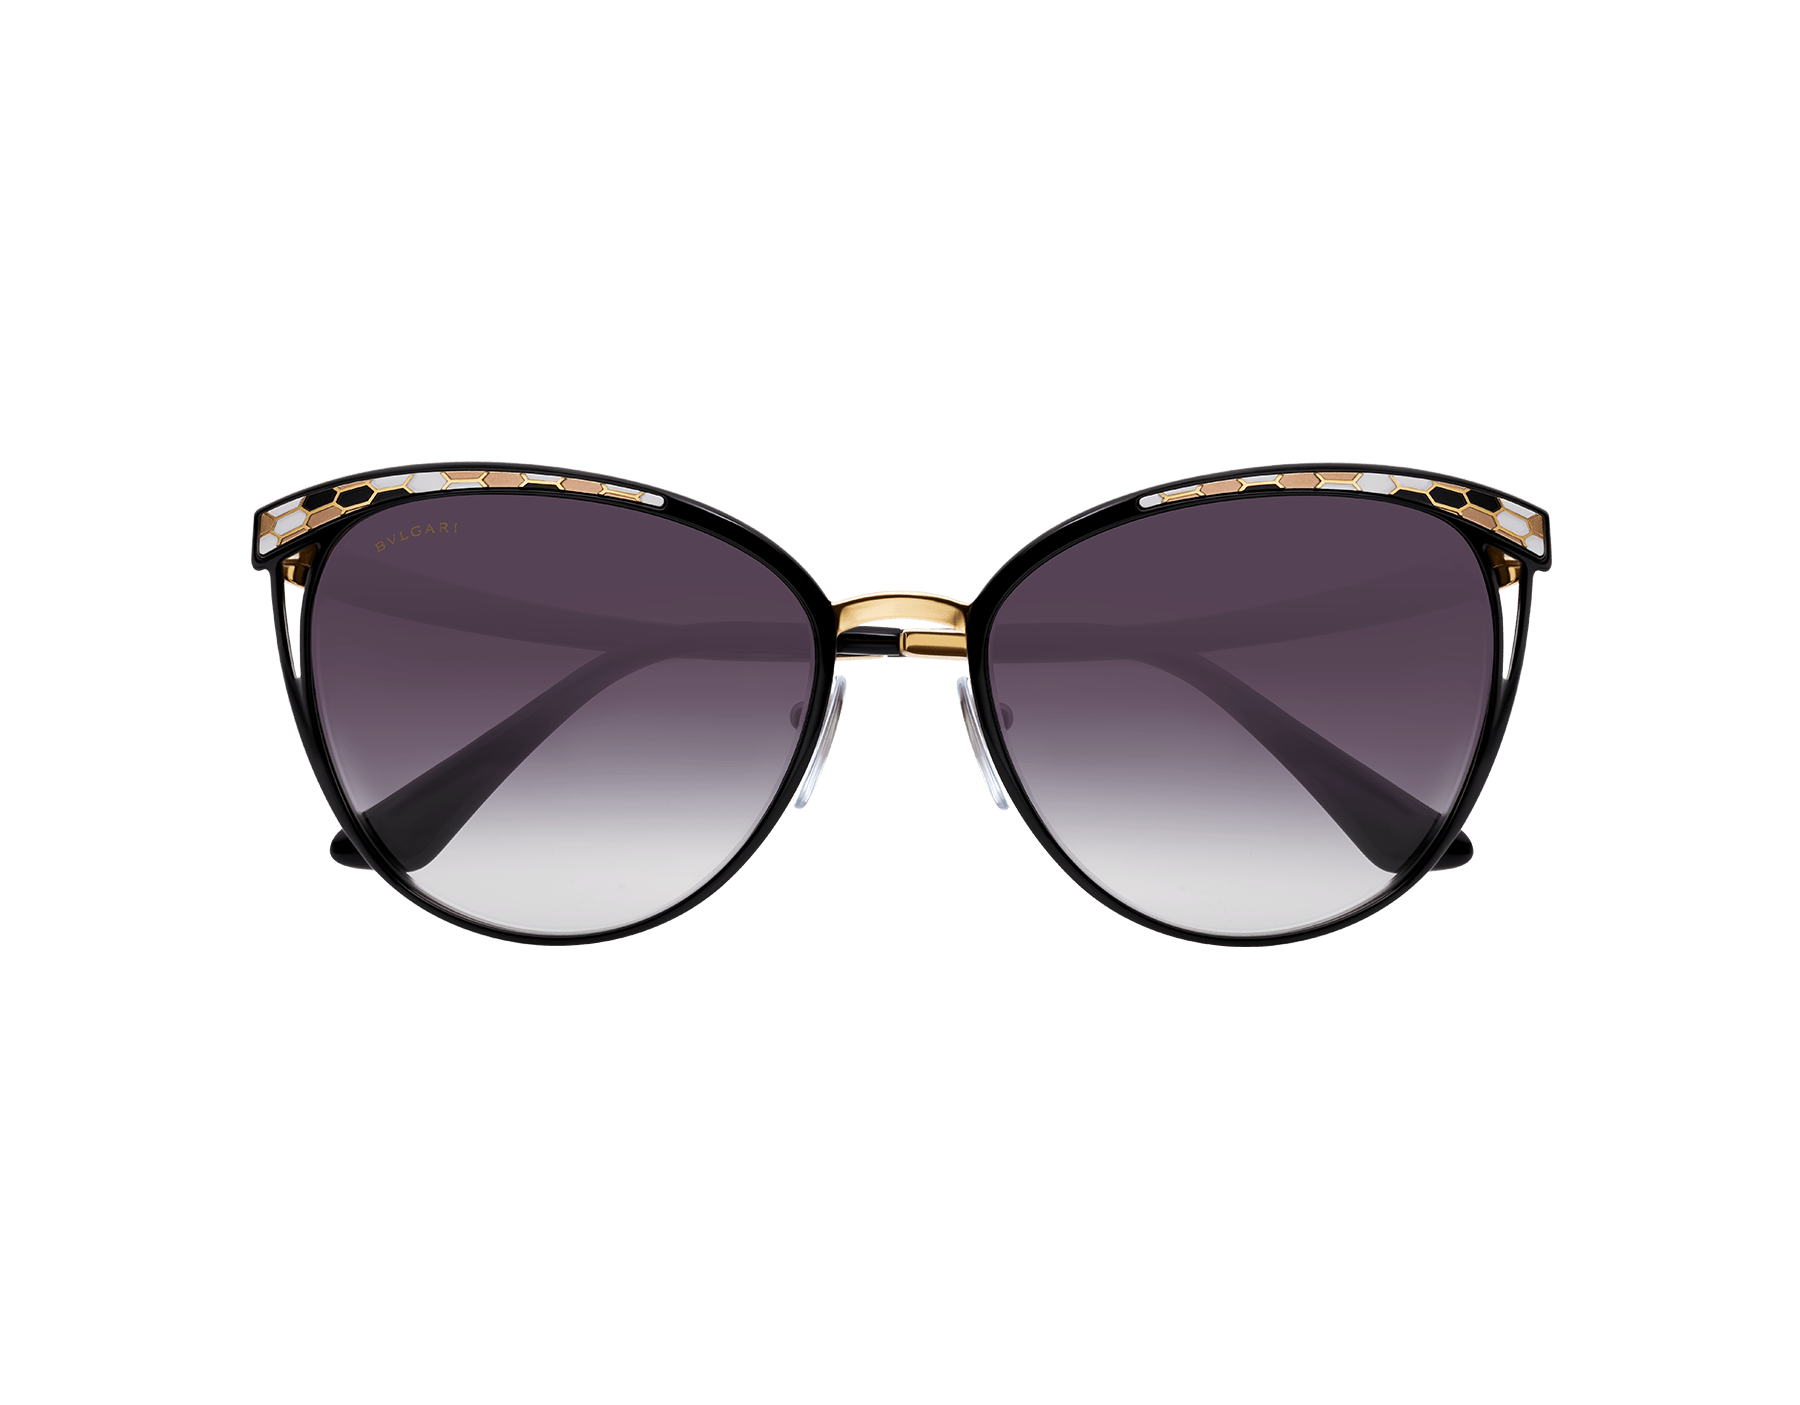 Bulgari Serpenti Serpentine cat-eye metal sunglasses. BV6083 image 3